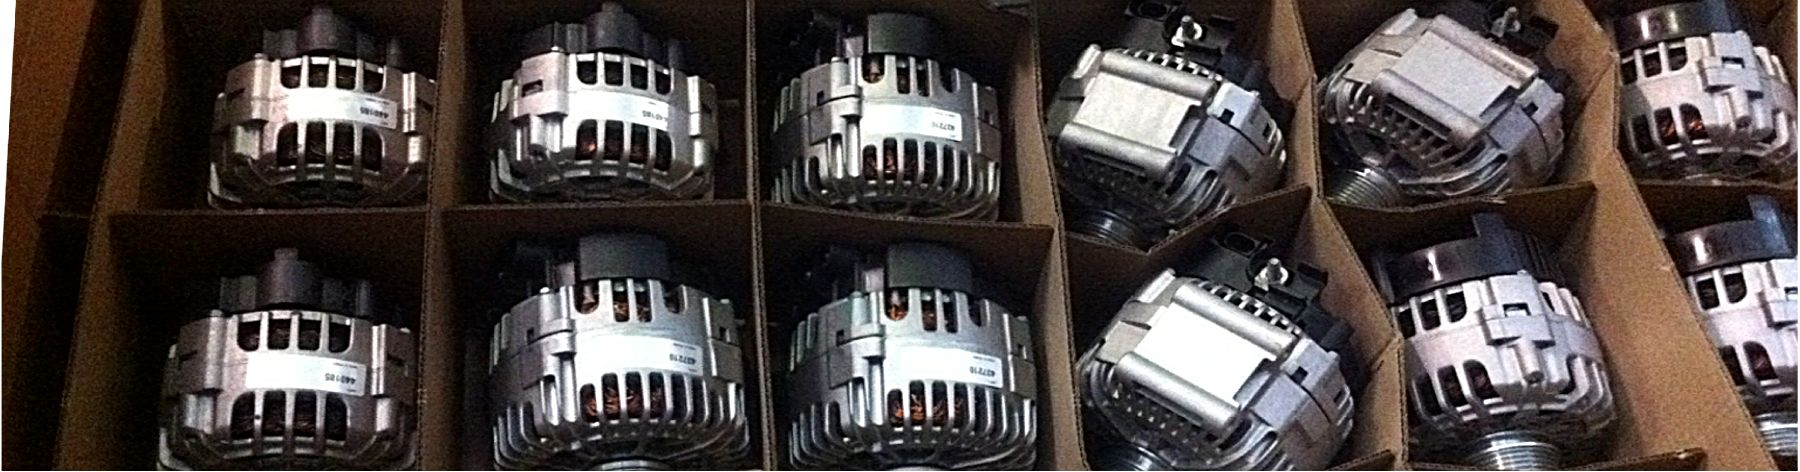 Starter and Alternators,  - supplied wholesale and by mail order throughout Ireland by AllStart, Cork